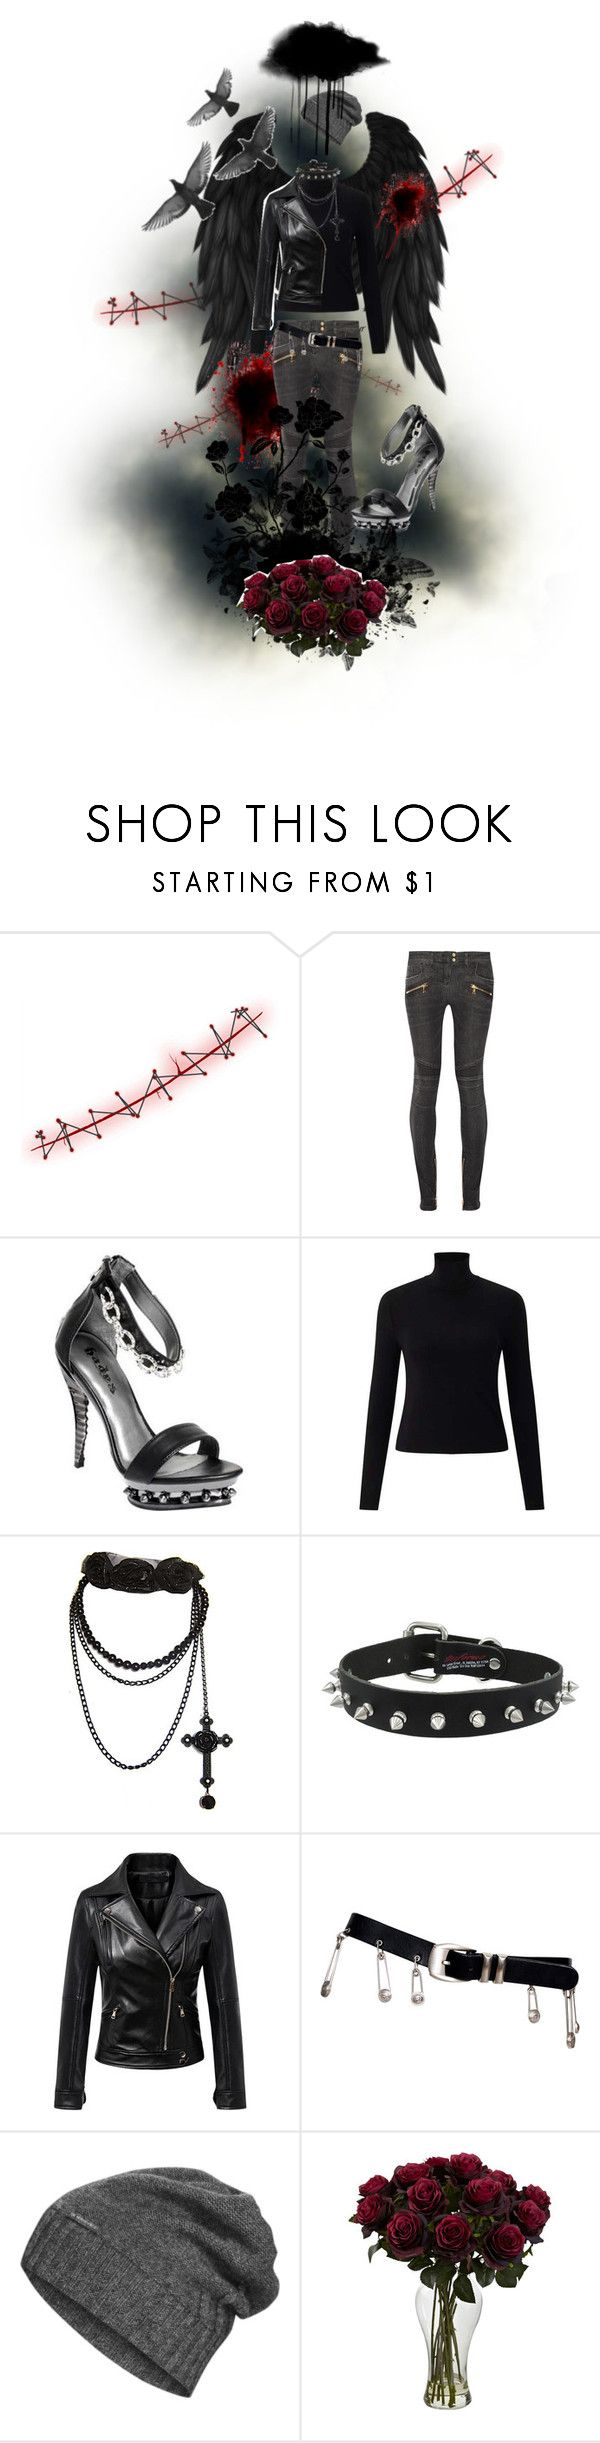 """""""It never ends."""" by x666x999x ❤ liked on Polyvore featuring Balmain, HADES, Miss Selfridge, Versace and The North Face"""